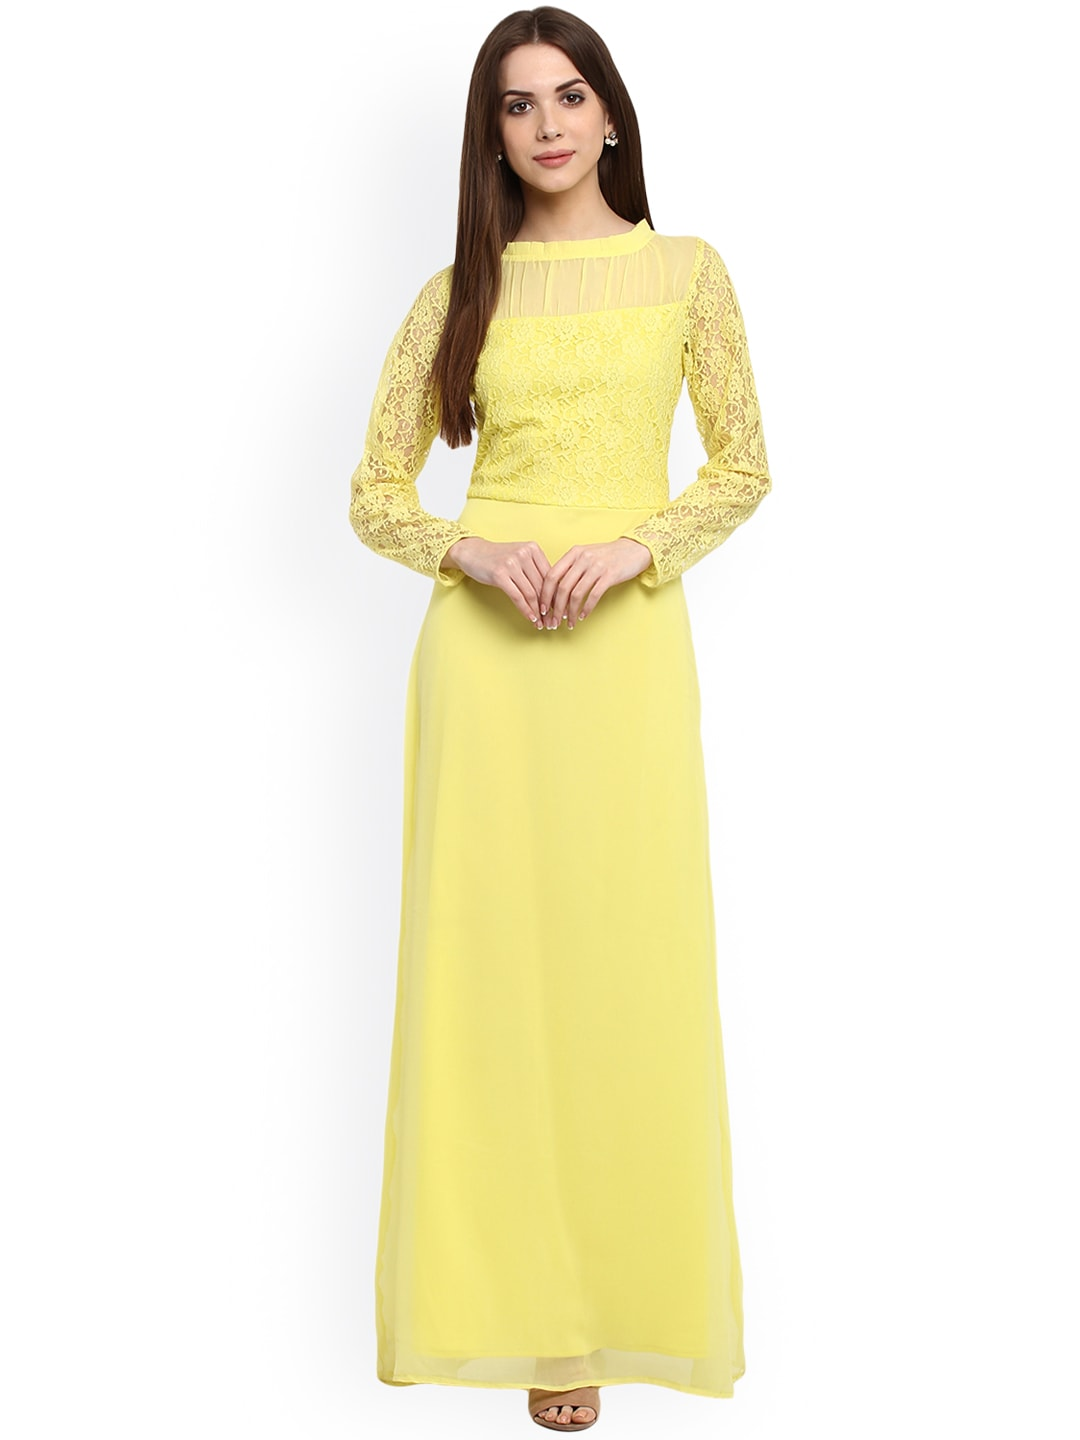 73924a1c128 Party Dresses Shirts - Buy Party Dresses Shirts online in India